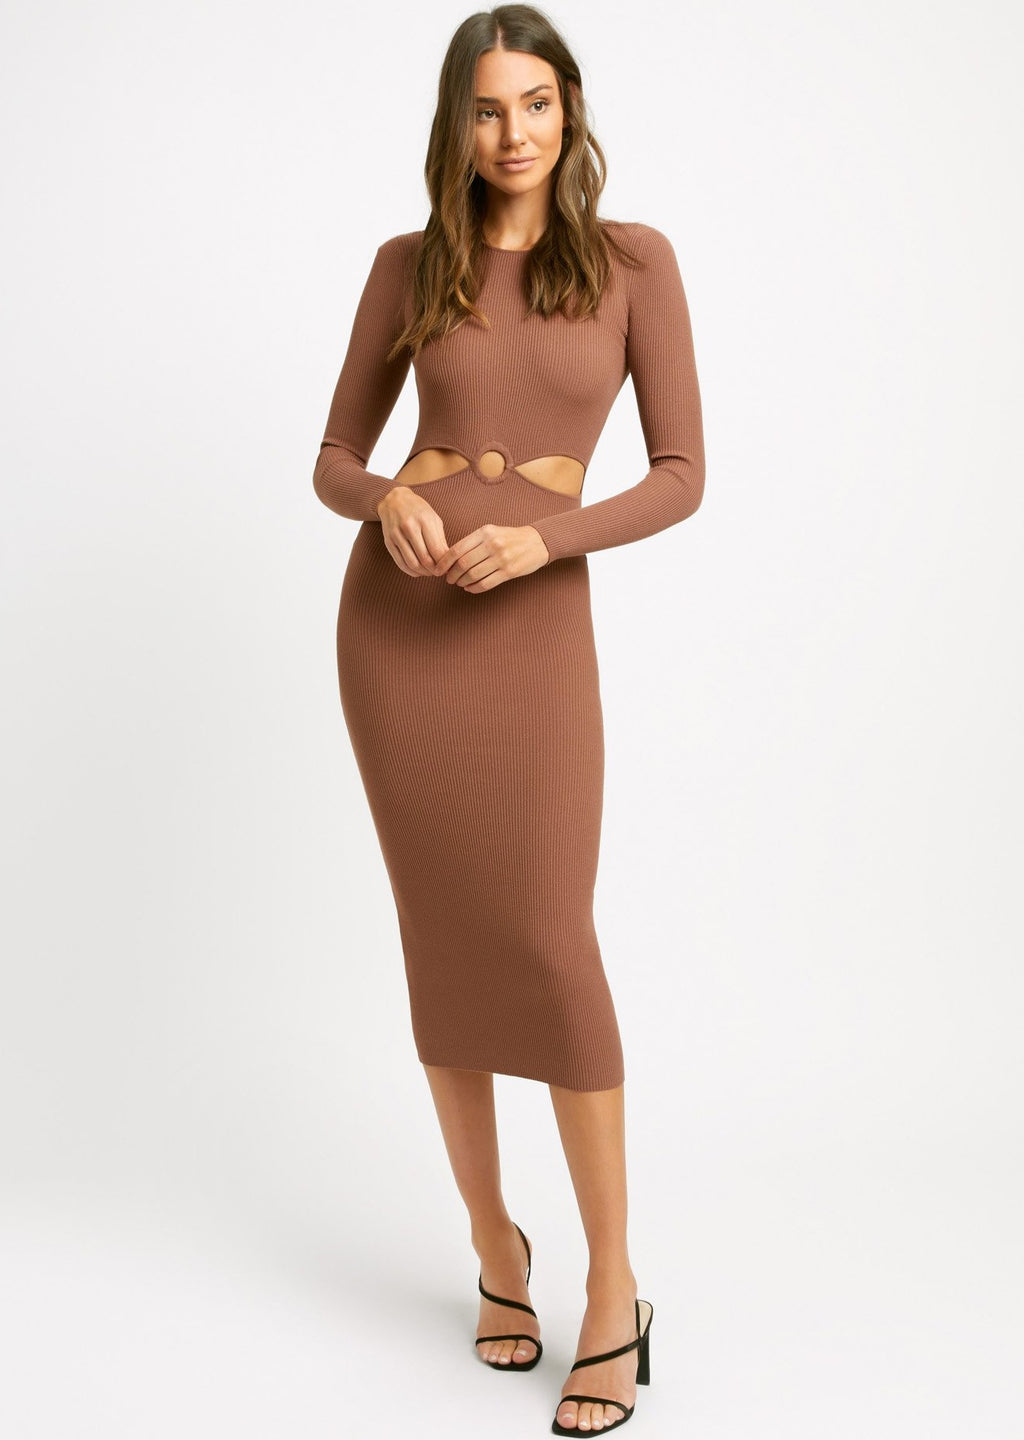 Lola Long Sleeve Cut Out Dress (Cocoa) - Kookai